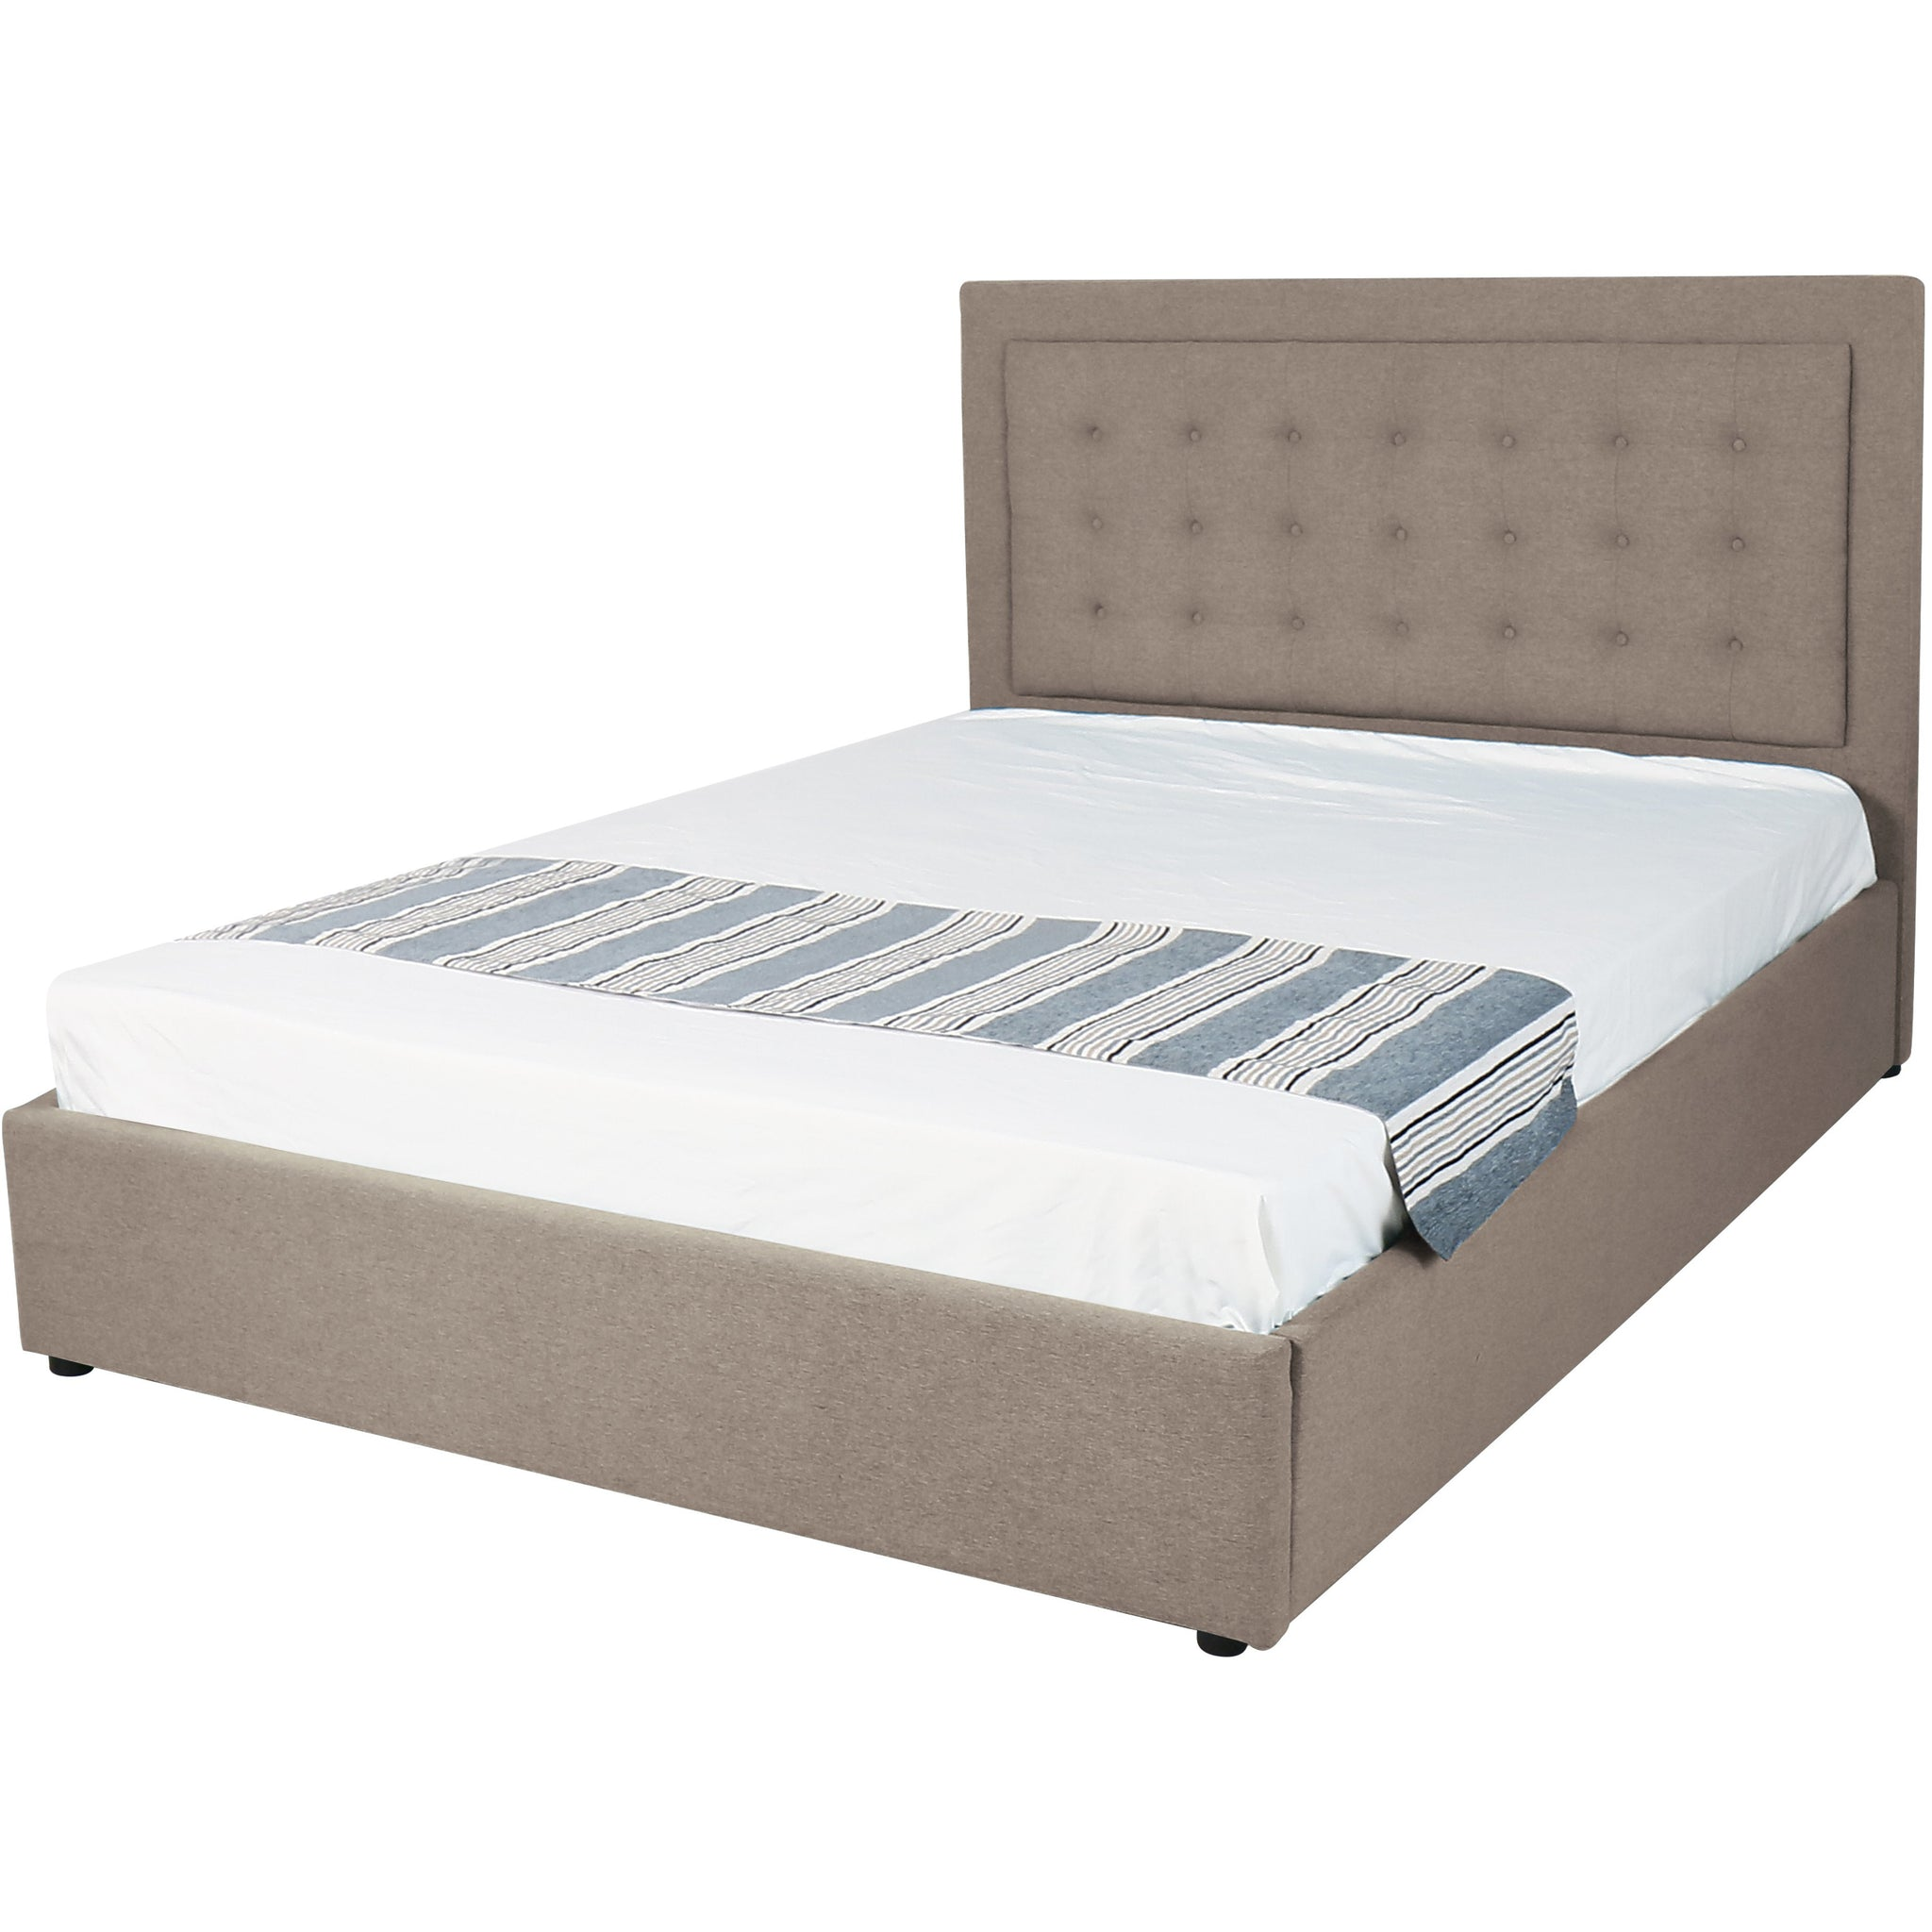 Bedroom Furniture - WALLAROO\'S FURNITURE and MATTRESSES